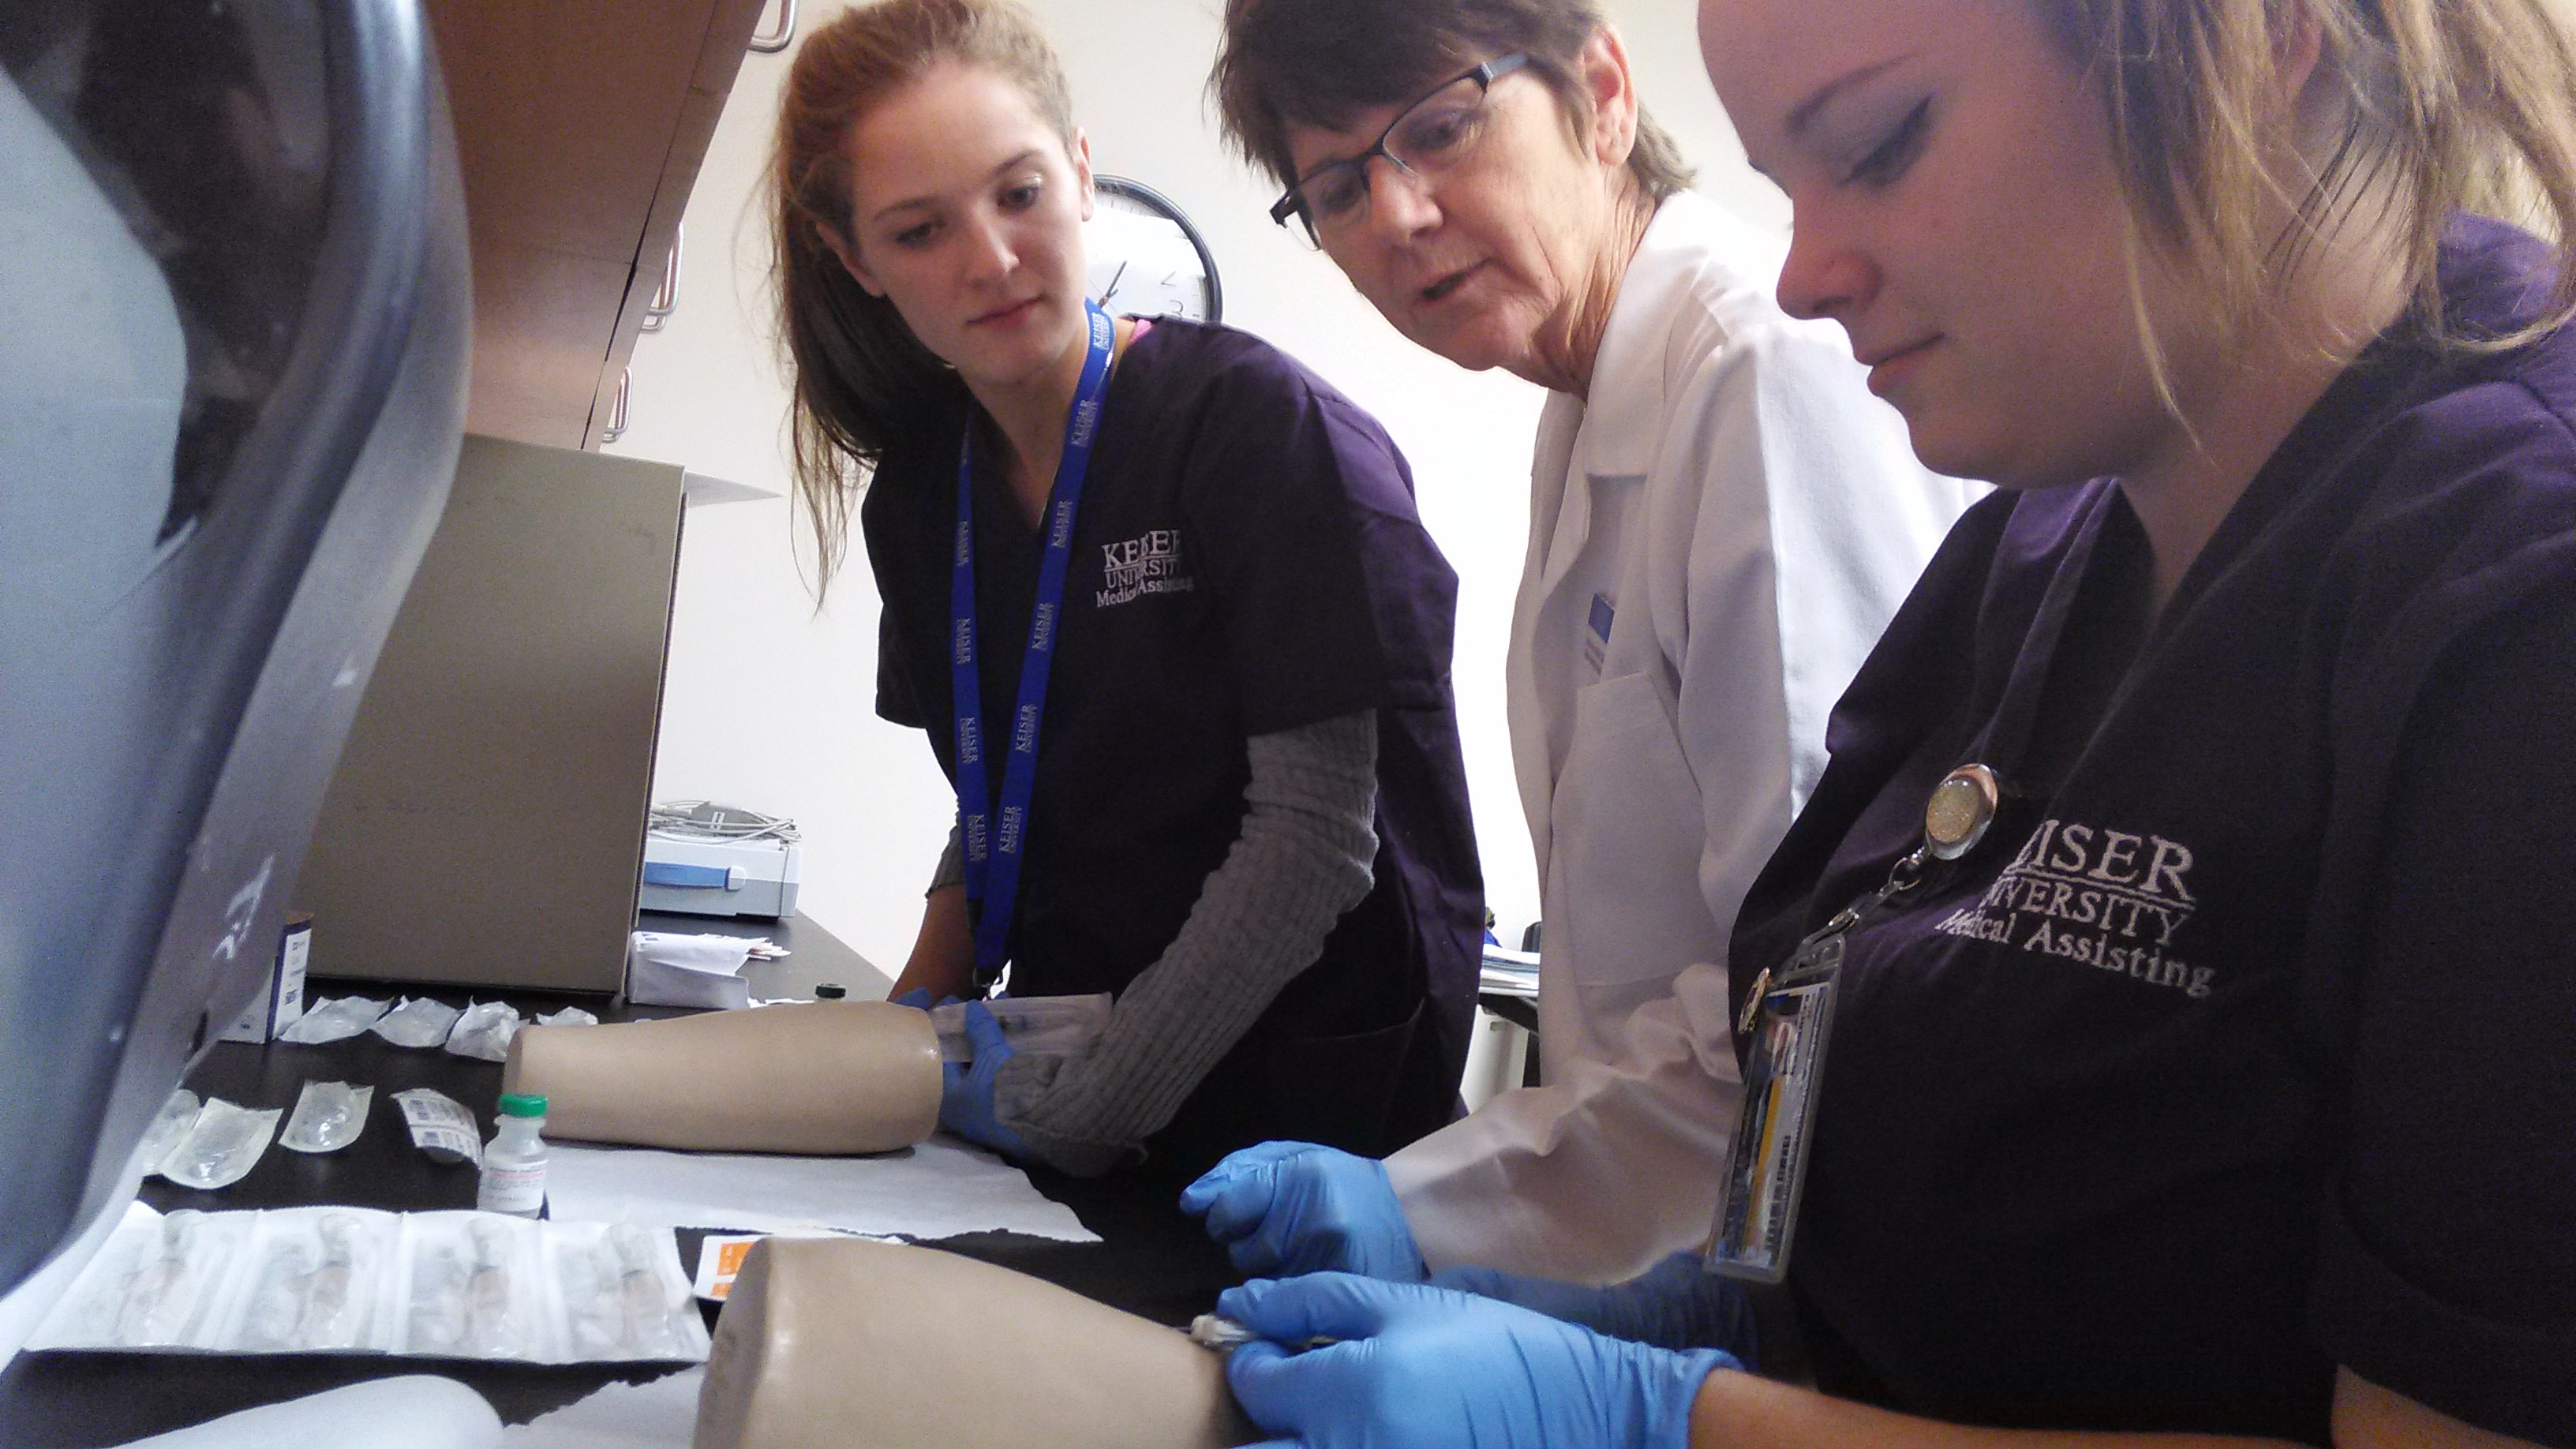 New Port Richey Medical Assisting Students Ready Themselves for Final Exams